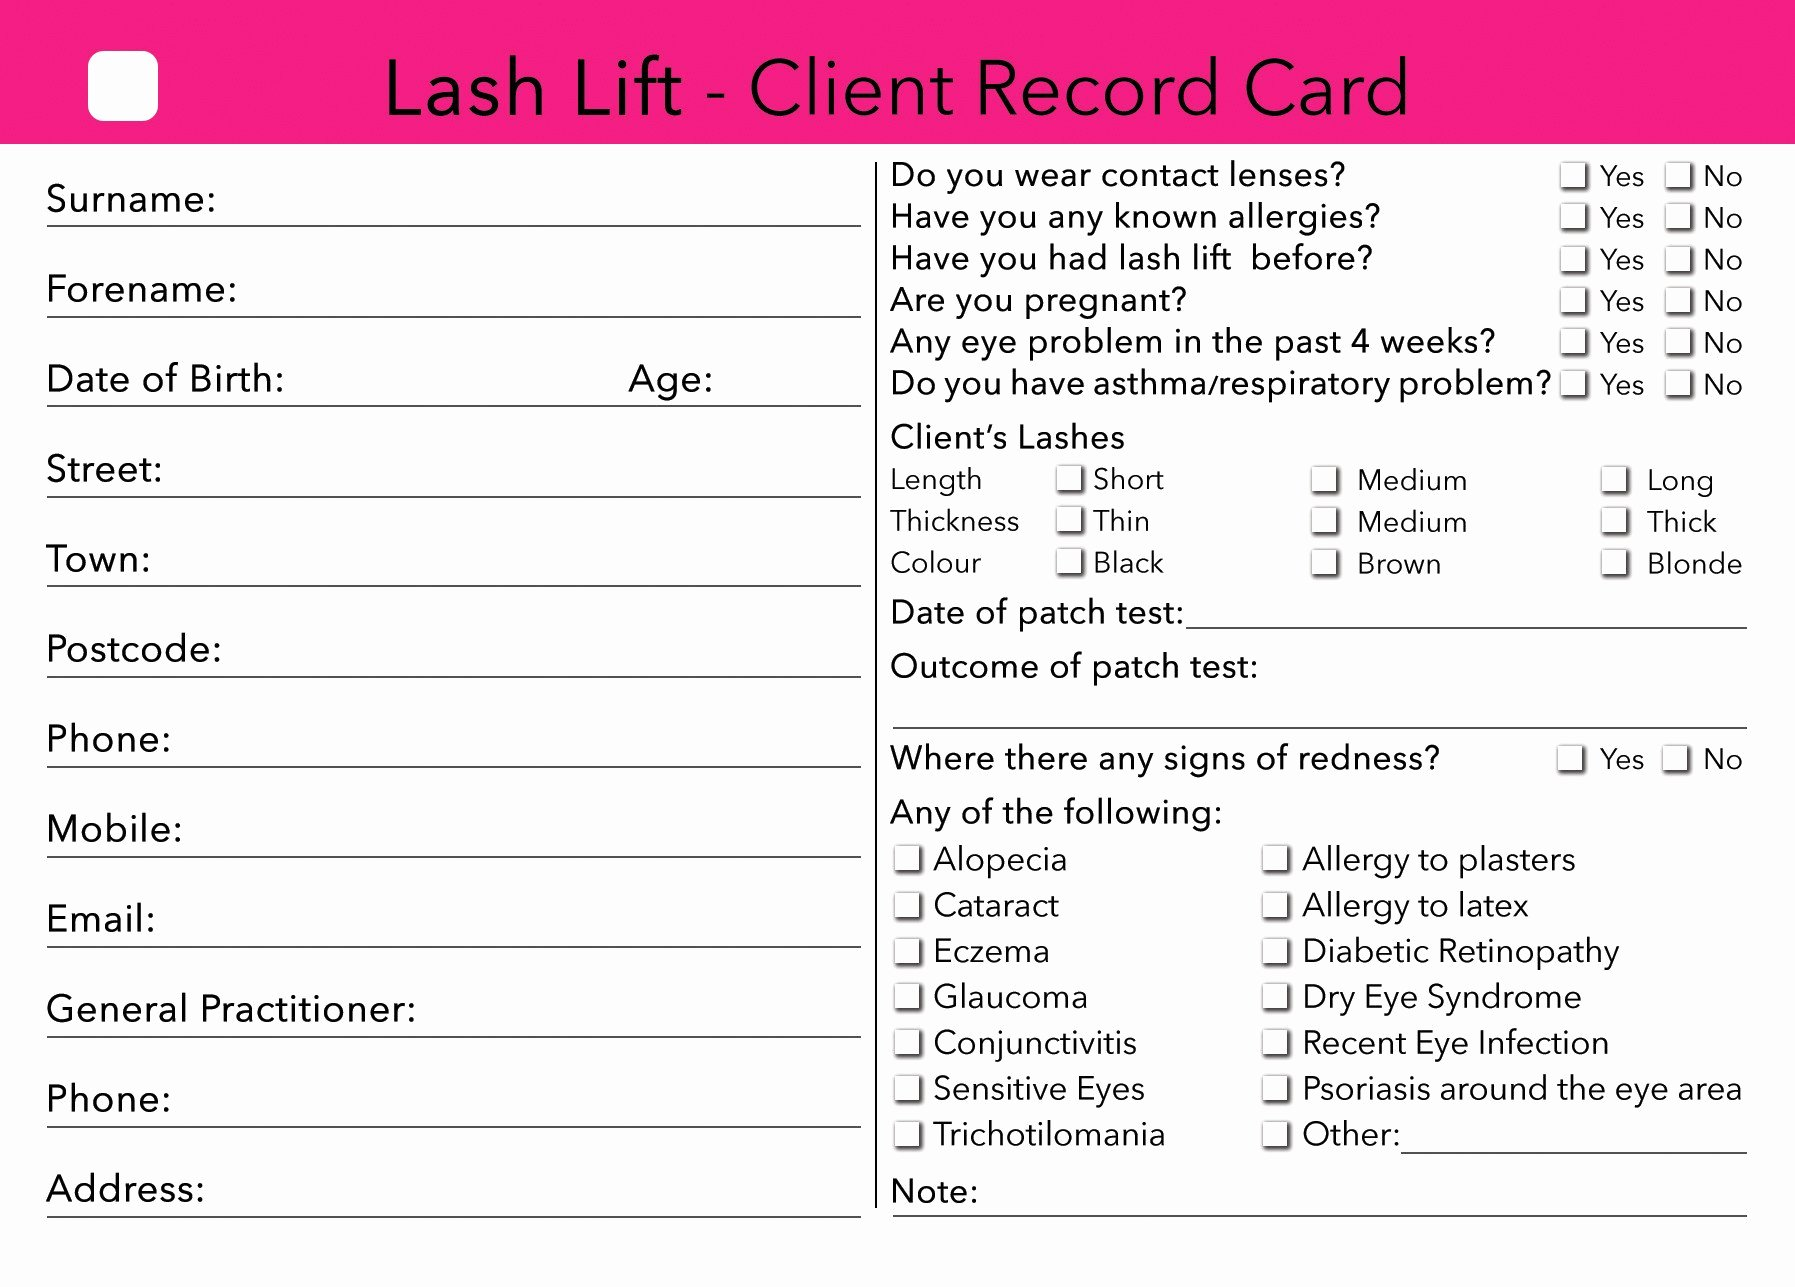 Waxing Consent form Template Luxury Contact Lens Record Card Template Tutore